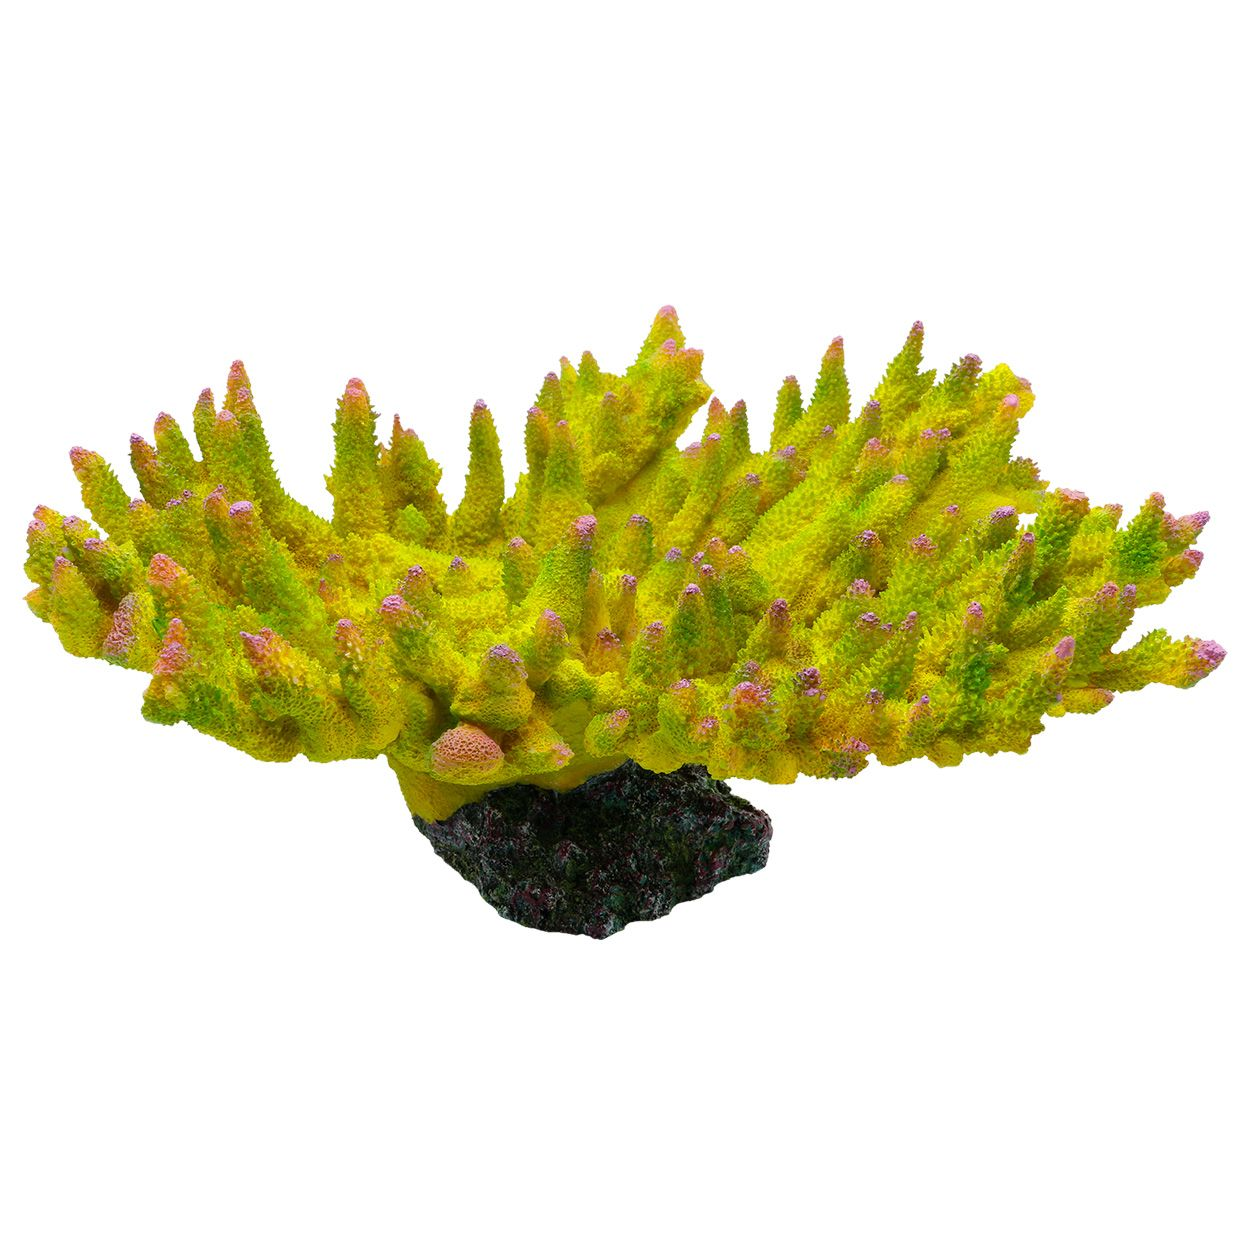 Underwater Treasures Acropora Coral - Envy